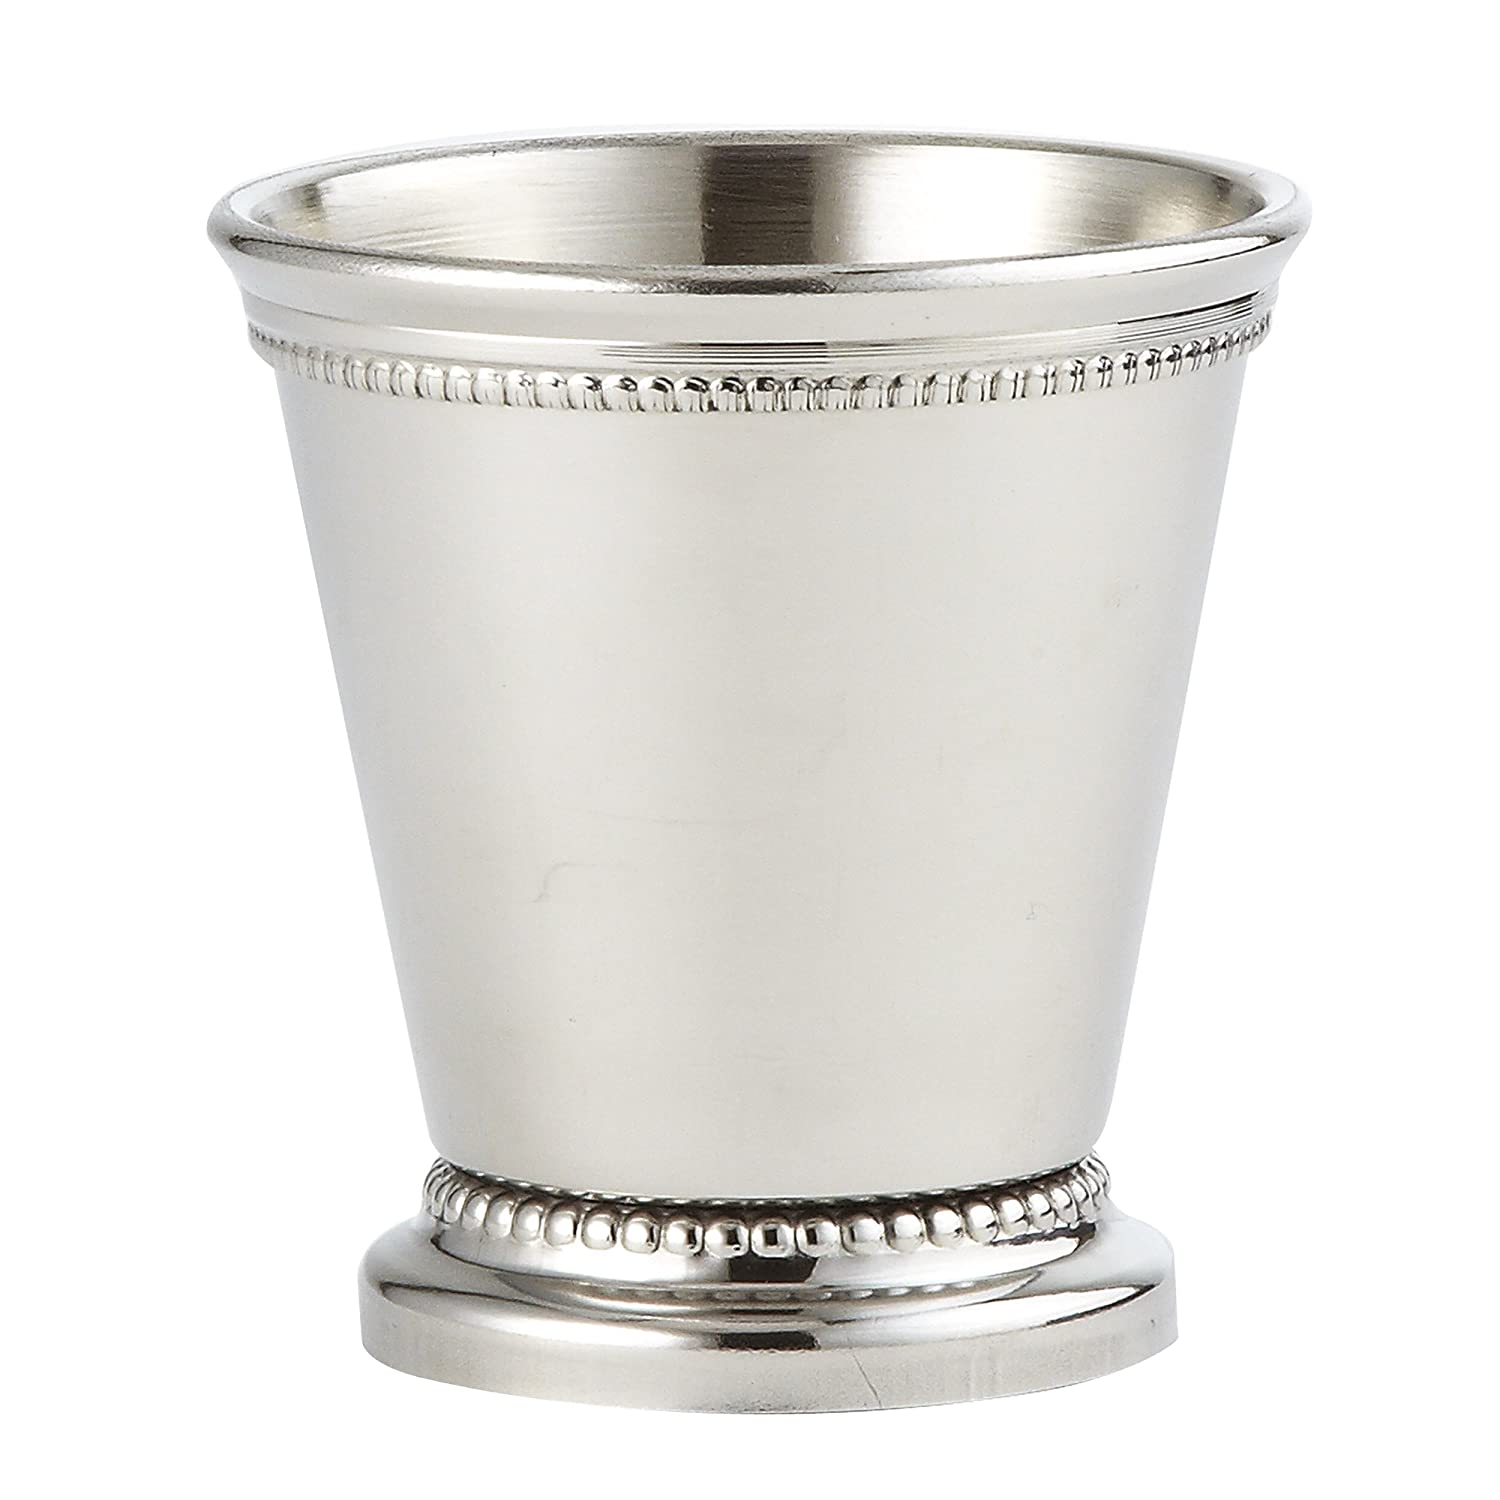 Elegance Mini Beaded Mint Julep Cup - 4 oz. - 2 3/4 Leeber Limited USA 90476